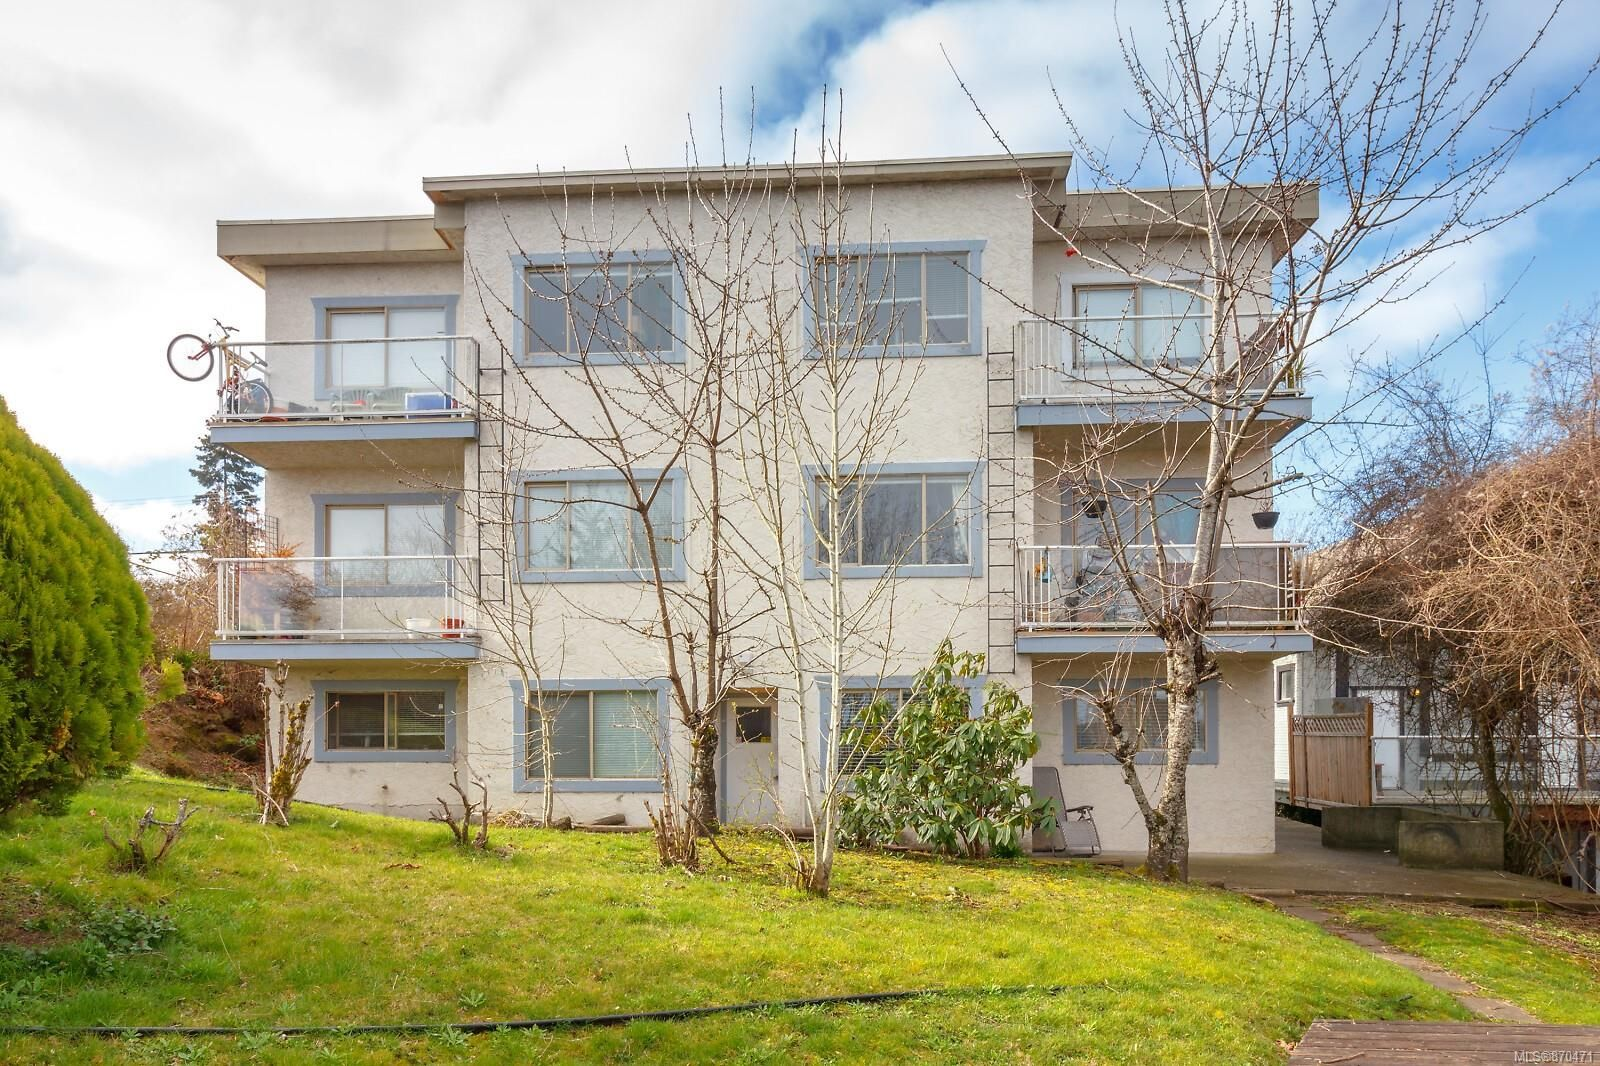 Main Photo: 34 Robarts St in : Na Old City Multi Family for sale (Nanaimo)  : MLS®# 870471